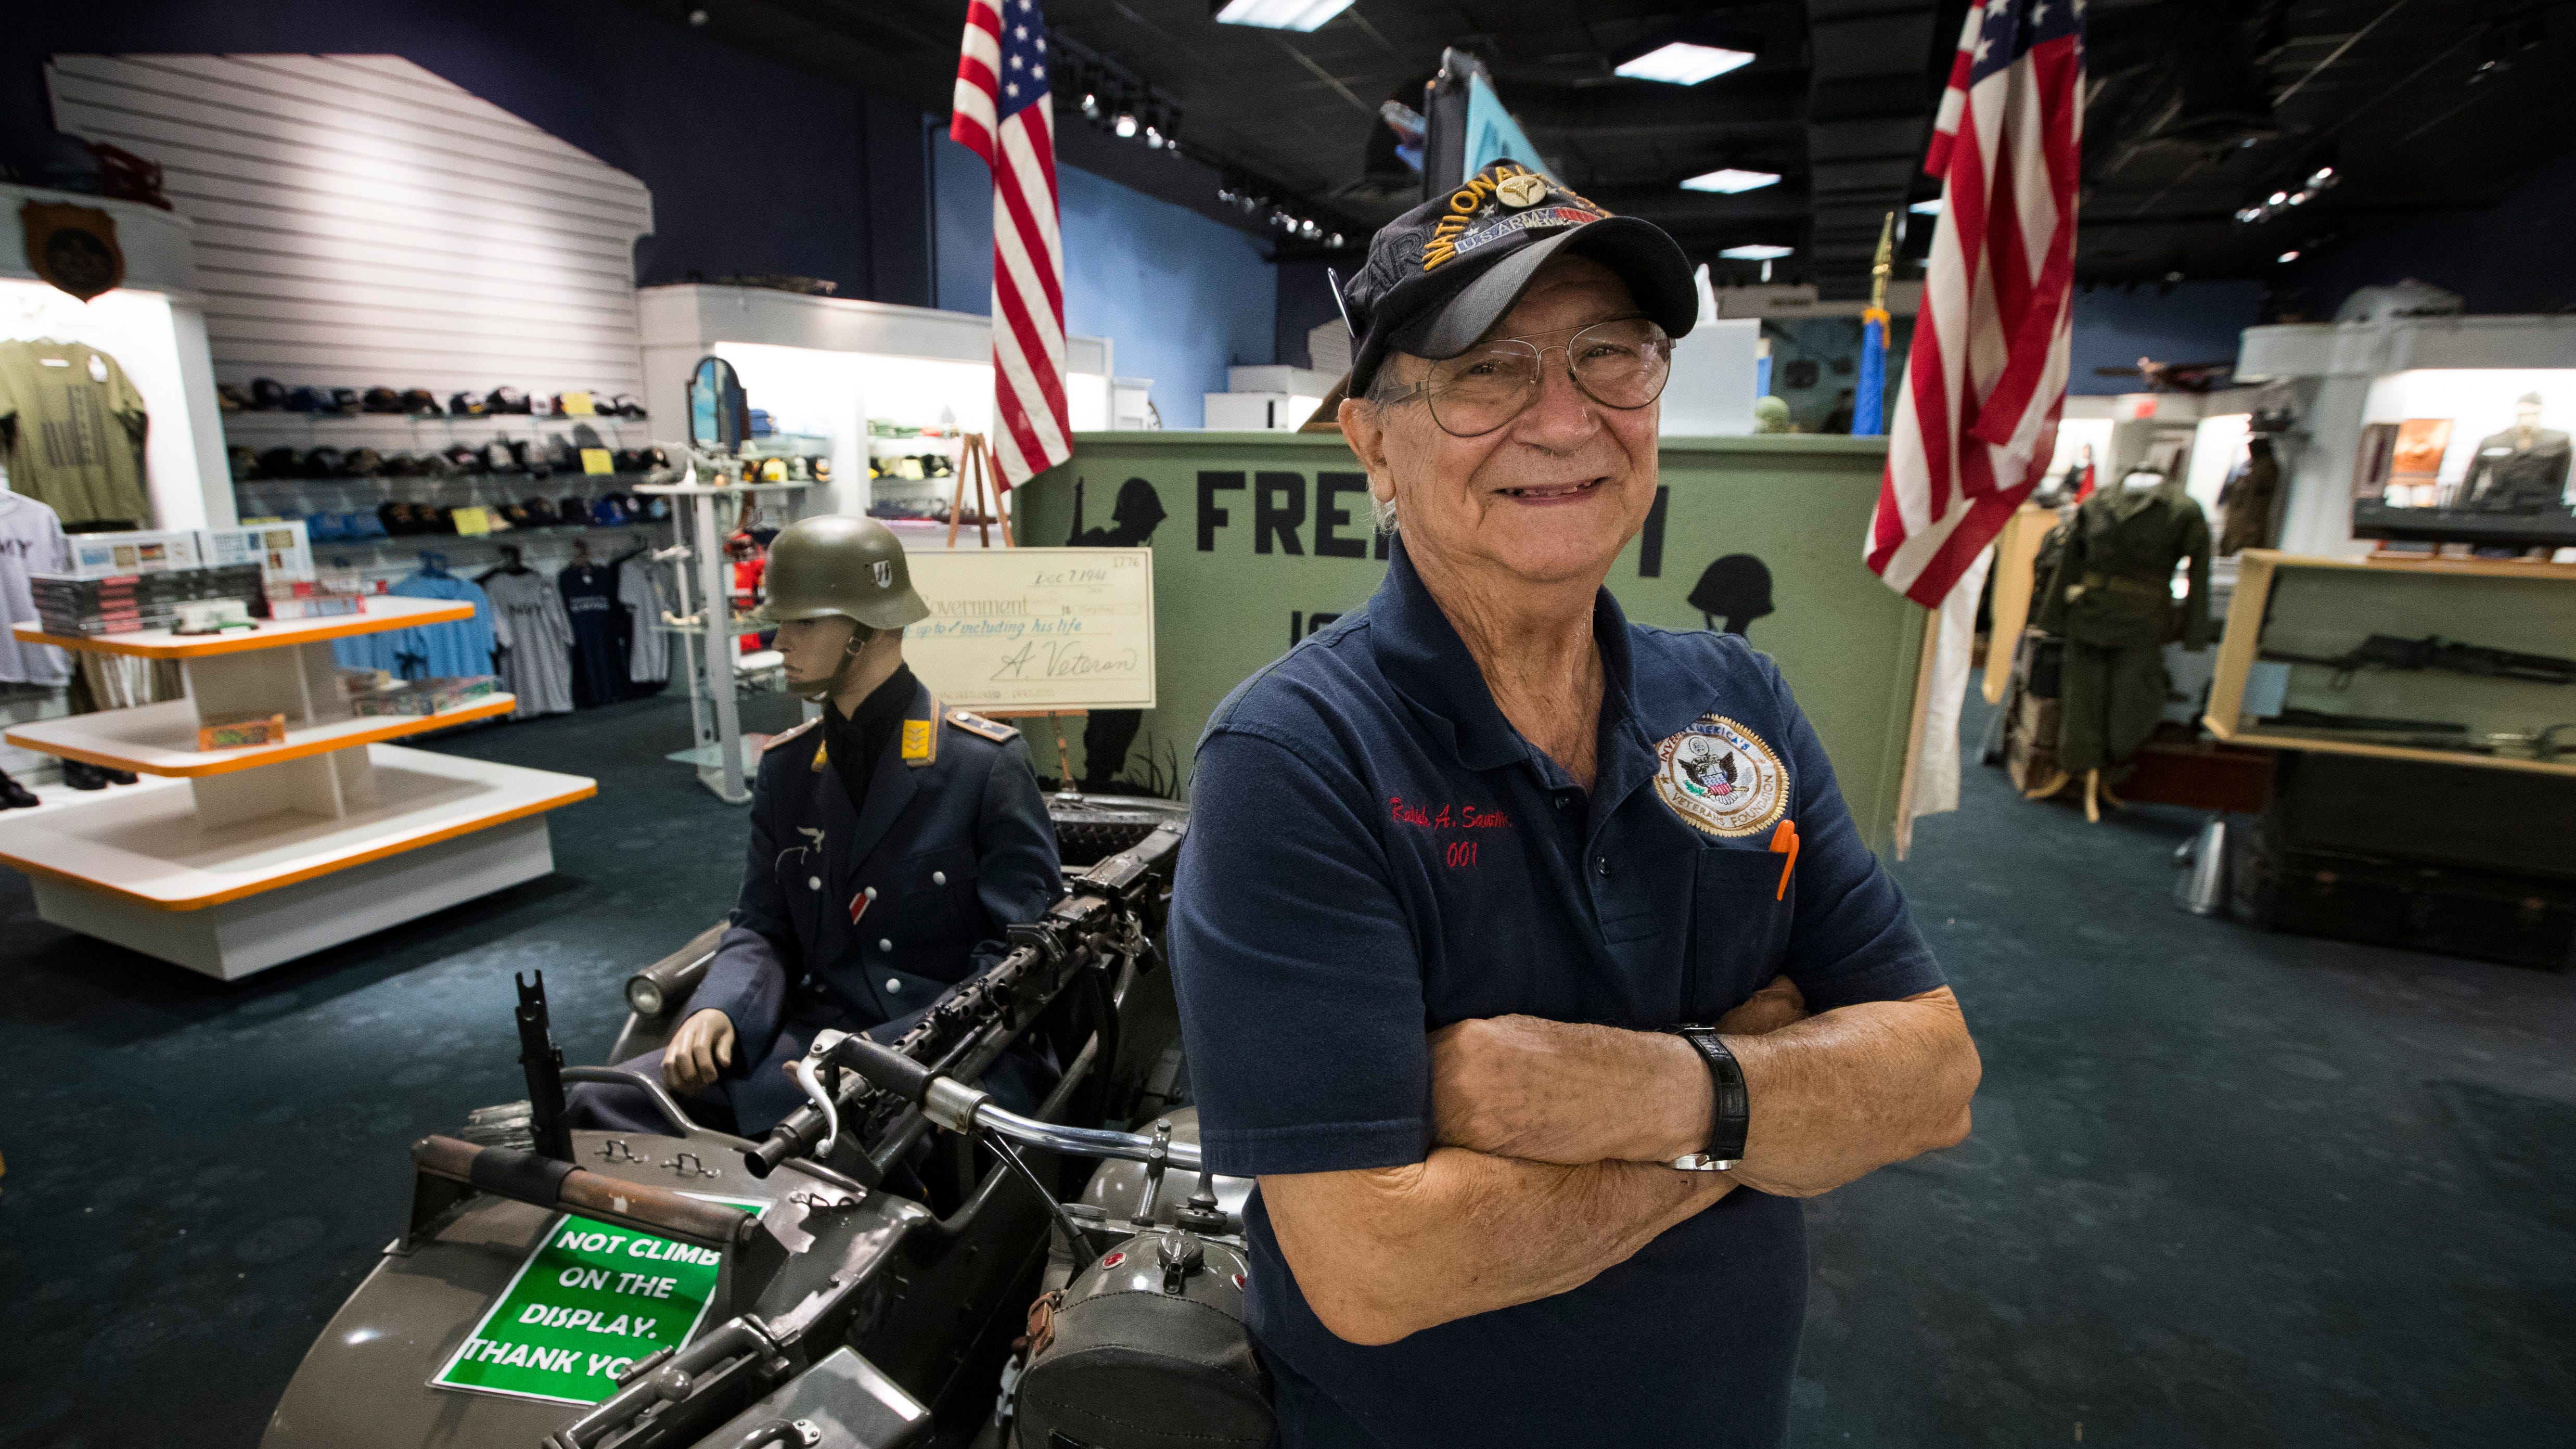 Ralph Santillo, founder and CEO of the Southwest Florida Military Museum is close to completing the relocation process for the museum as it has found a new home at the former Disney store at Edison Mall.